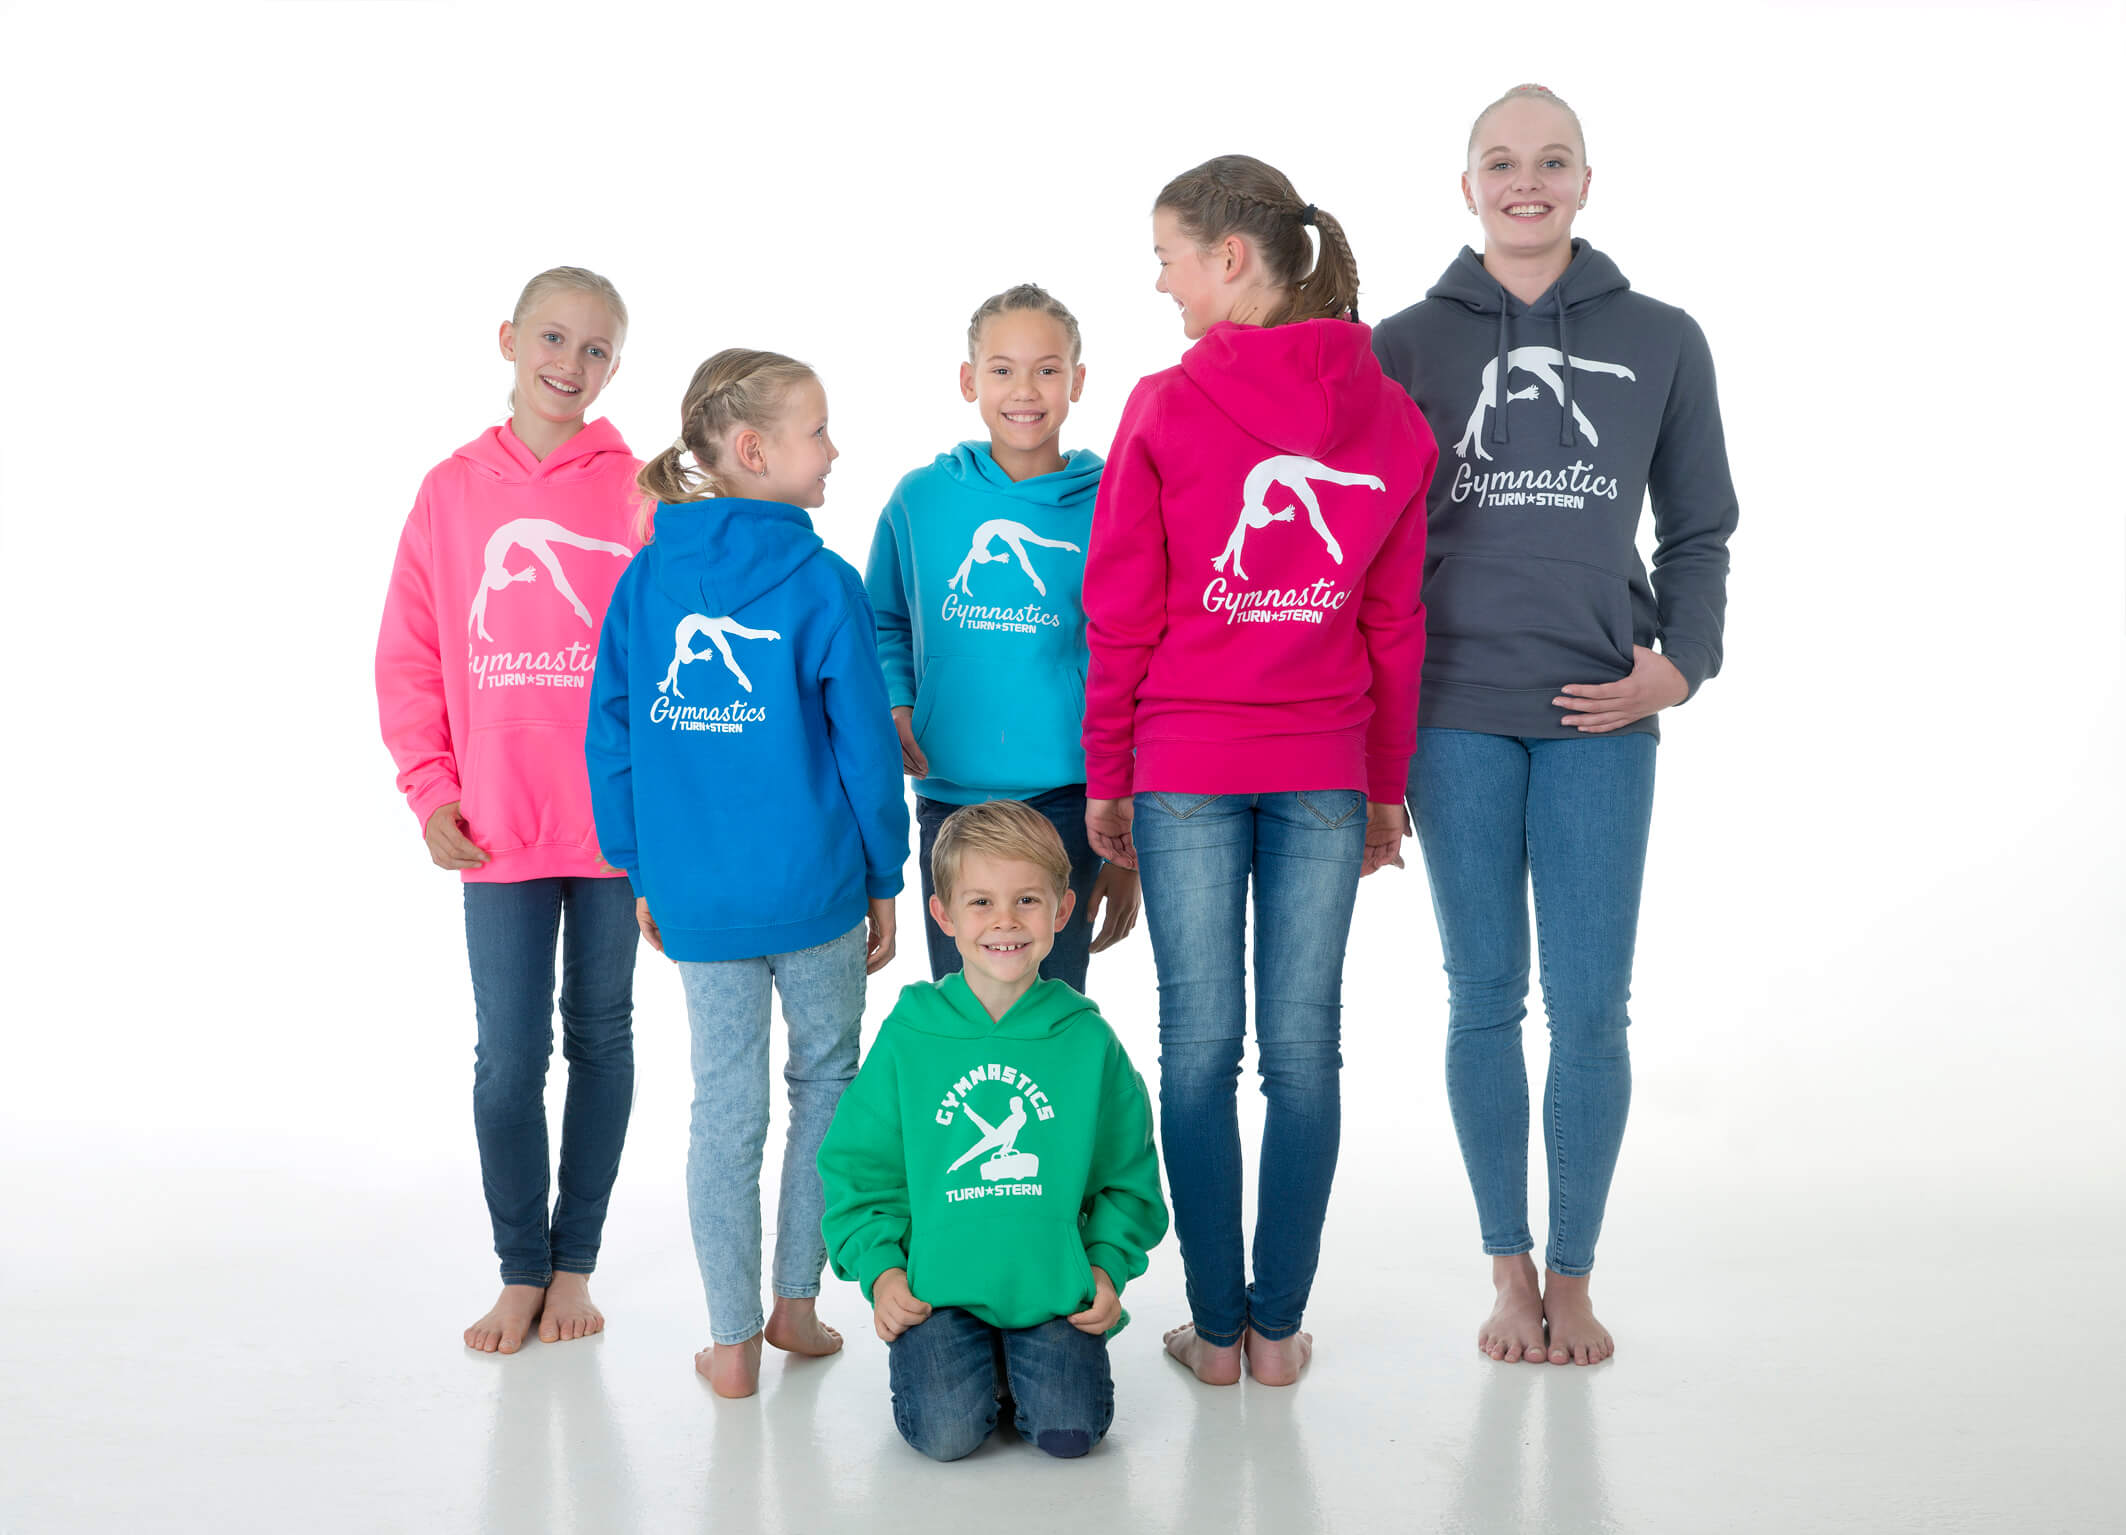 Gymnastics Hoodies by Turnstern